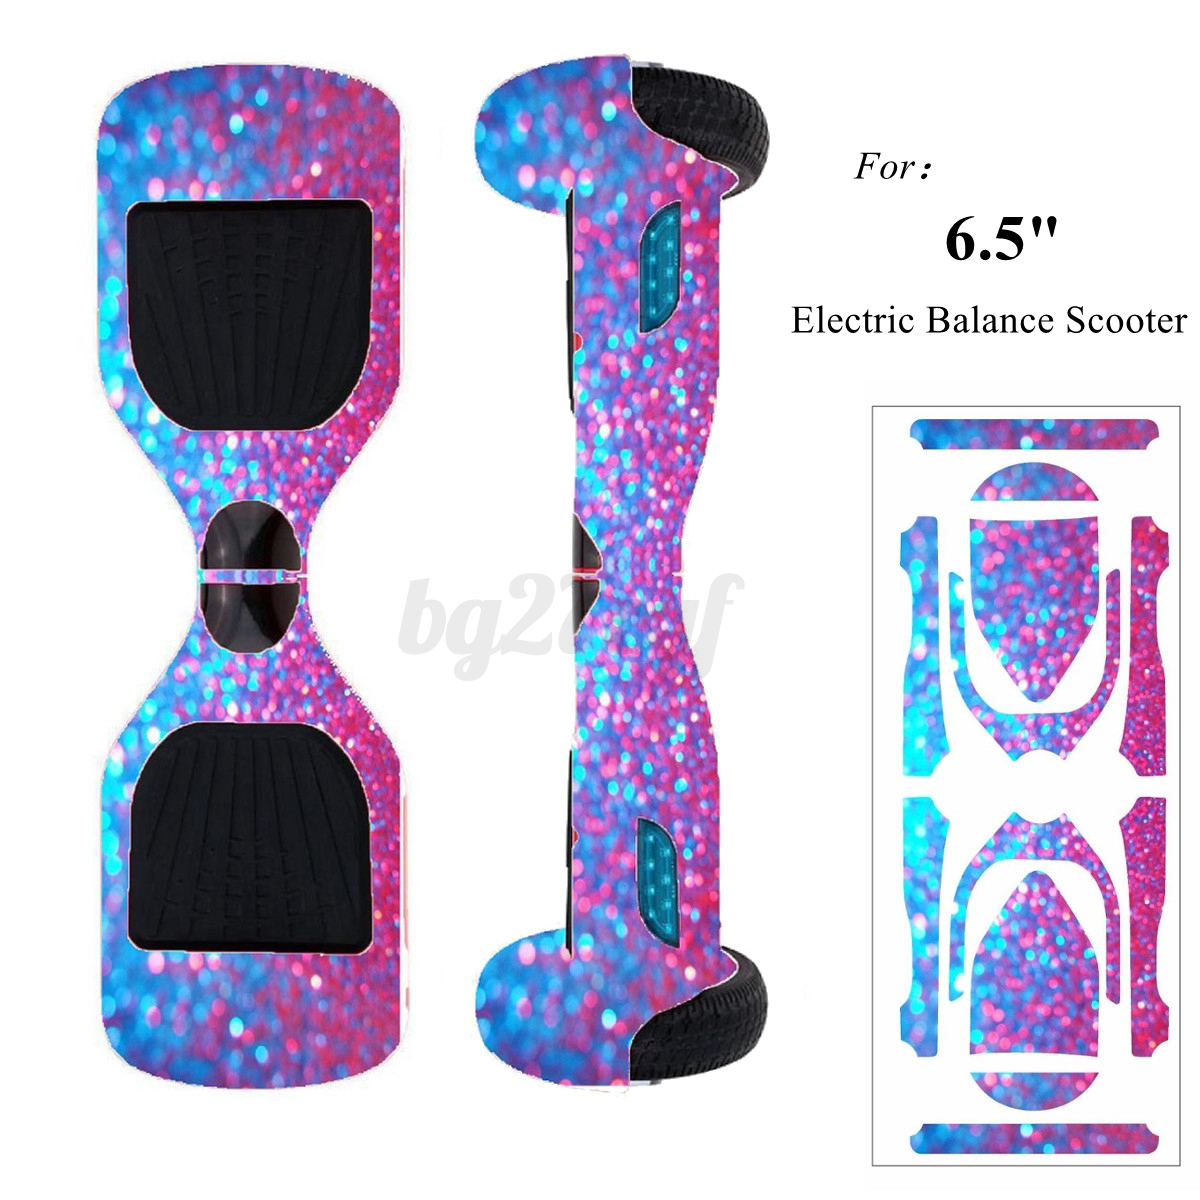 6 5 diy self balancing scooter hoverboard skin custom sticker decals kit new picclick au. Black Bedroom Furniture Sets. Home Design Ideas